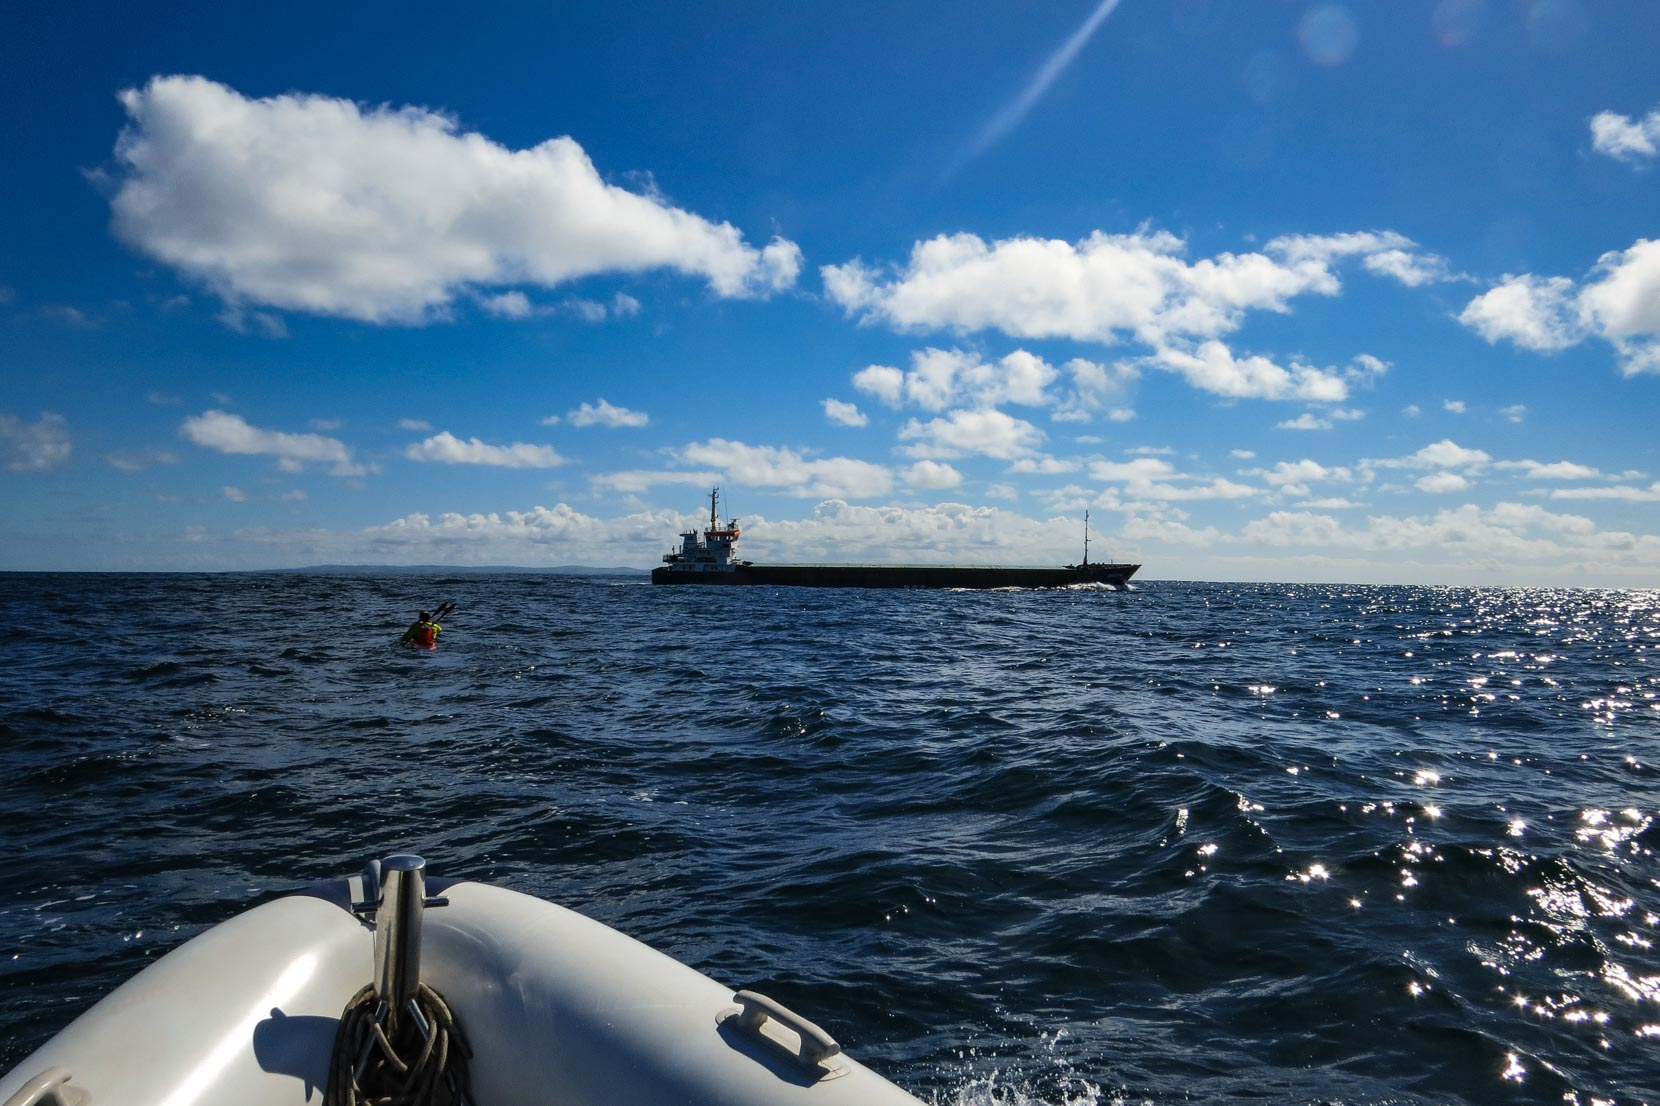 The Celtic Crossing » From the Scilly Isles to Sennen